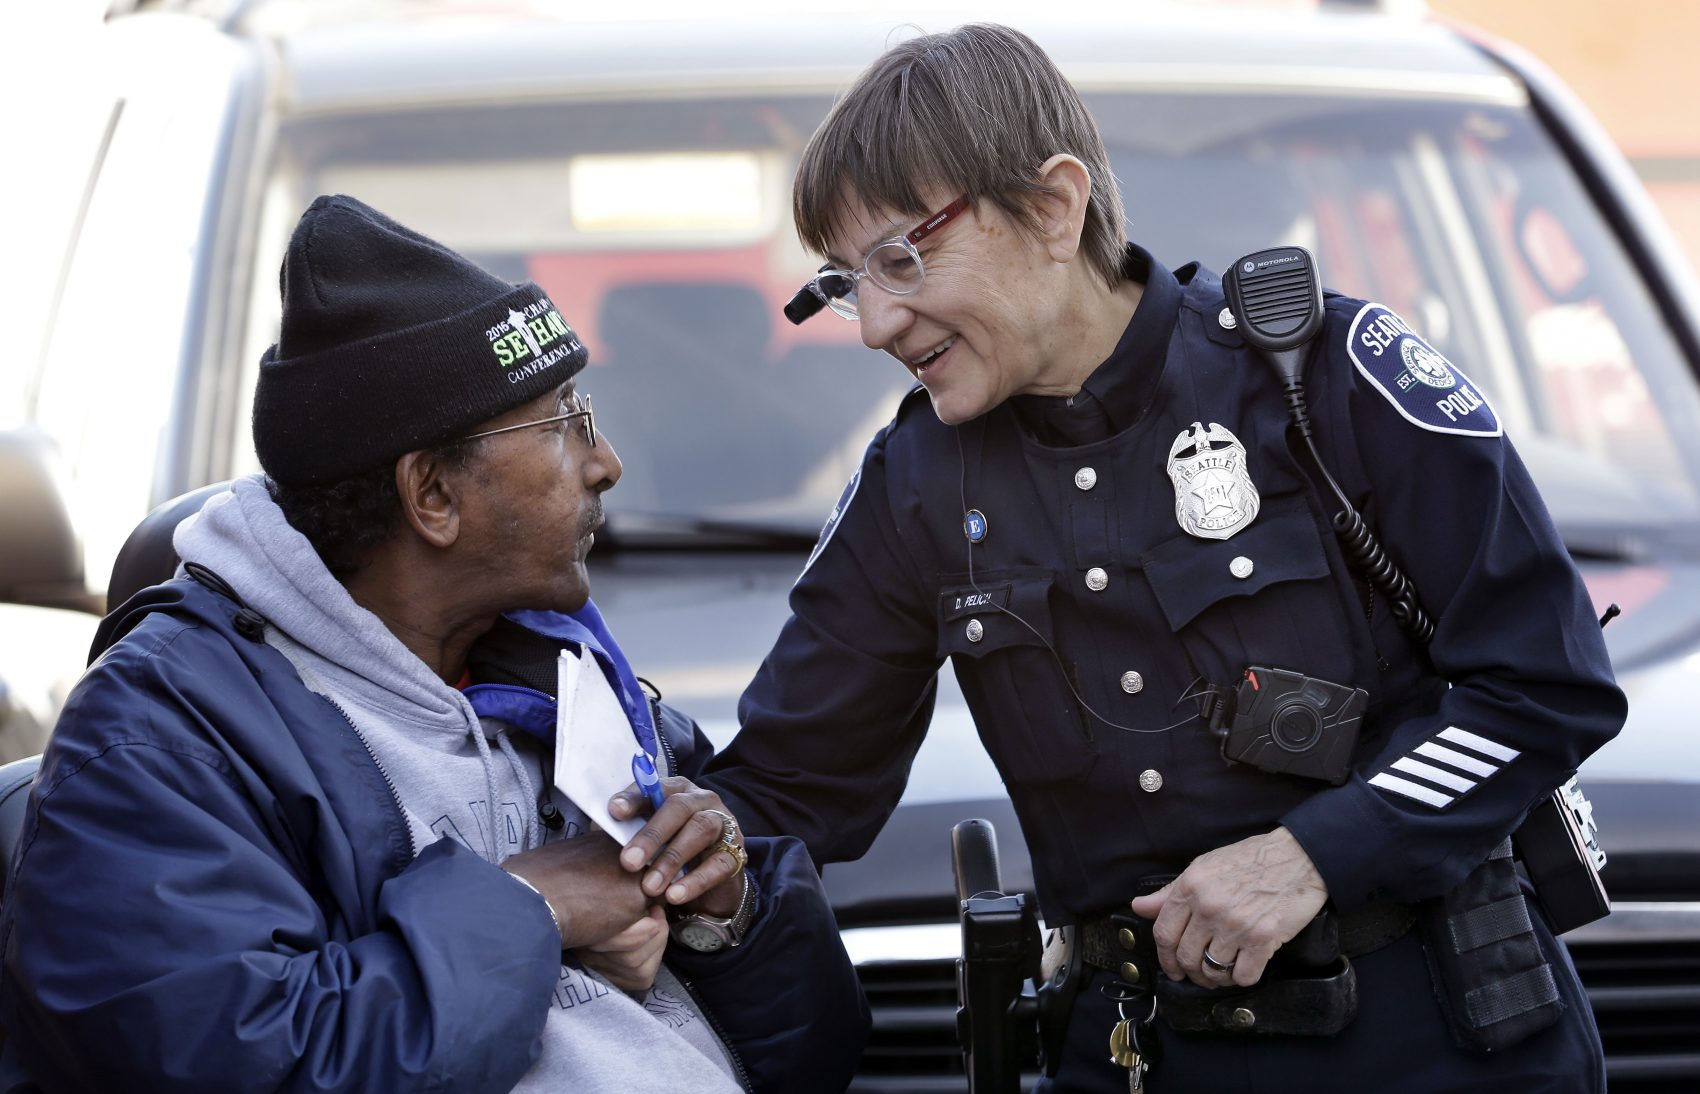 In this March 12, 2015, file photo, Seattle police officer Debra Pelich, right, wears a video camera on her eyeglasses as she talks with Alex Legesse before a small community gathering in Seattle. While the Seattle Police Department bars officers from using real-time facial recognition in body camera video, privacy activists are concerned that a proliferation of the technology could turn the cameras into tools of mass surveillance. The ACLU and other organizations on Tuesday, May 22, 2018, asked Amazon to stop selling its facial-recognition tool, called Rekognition, to law enforcement agencies. (Elaine Thompson/AP)